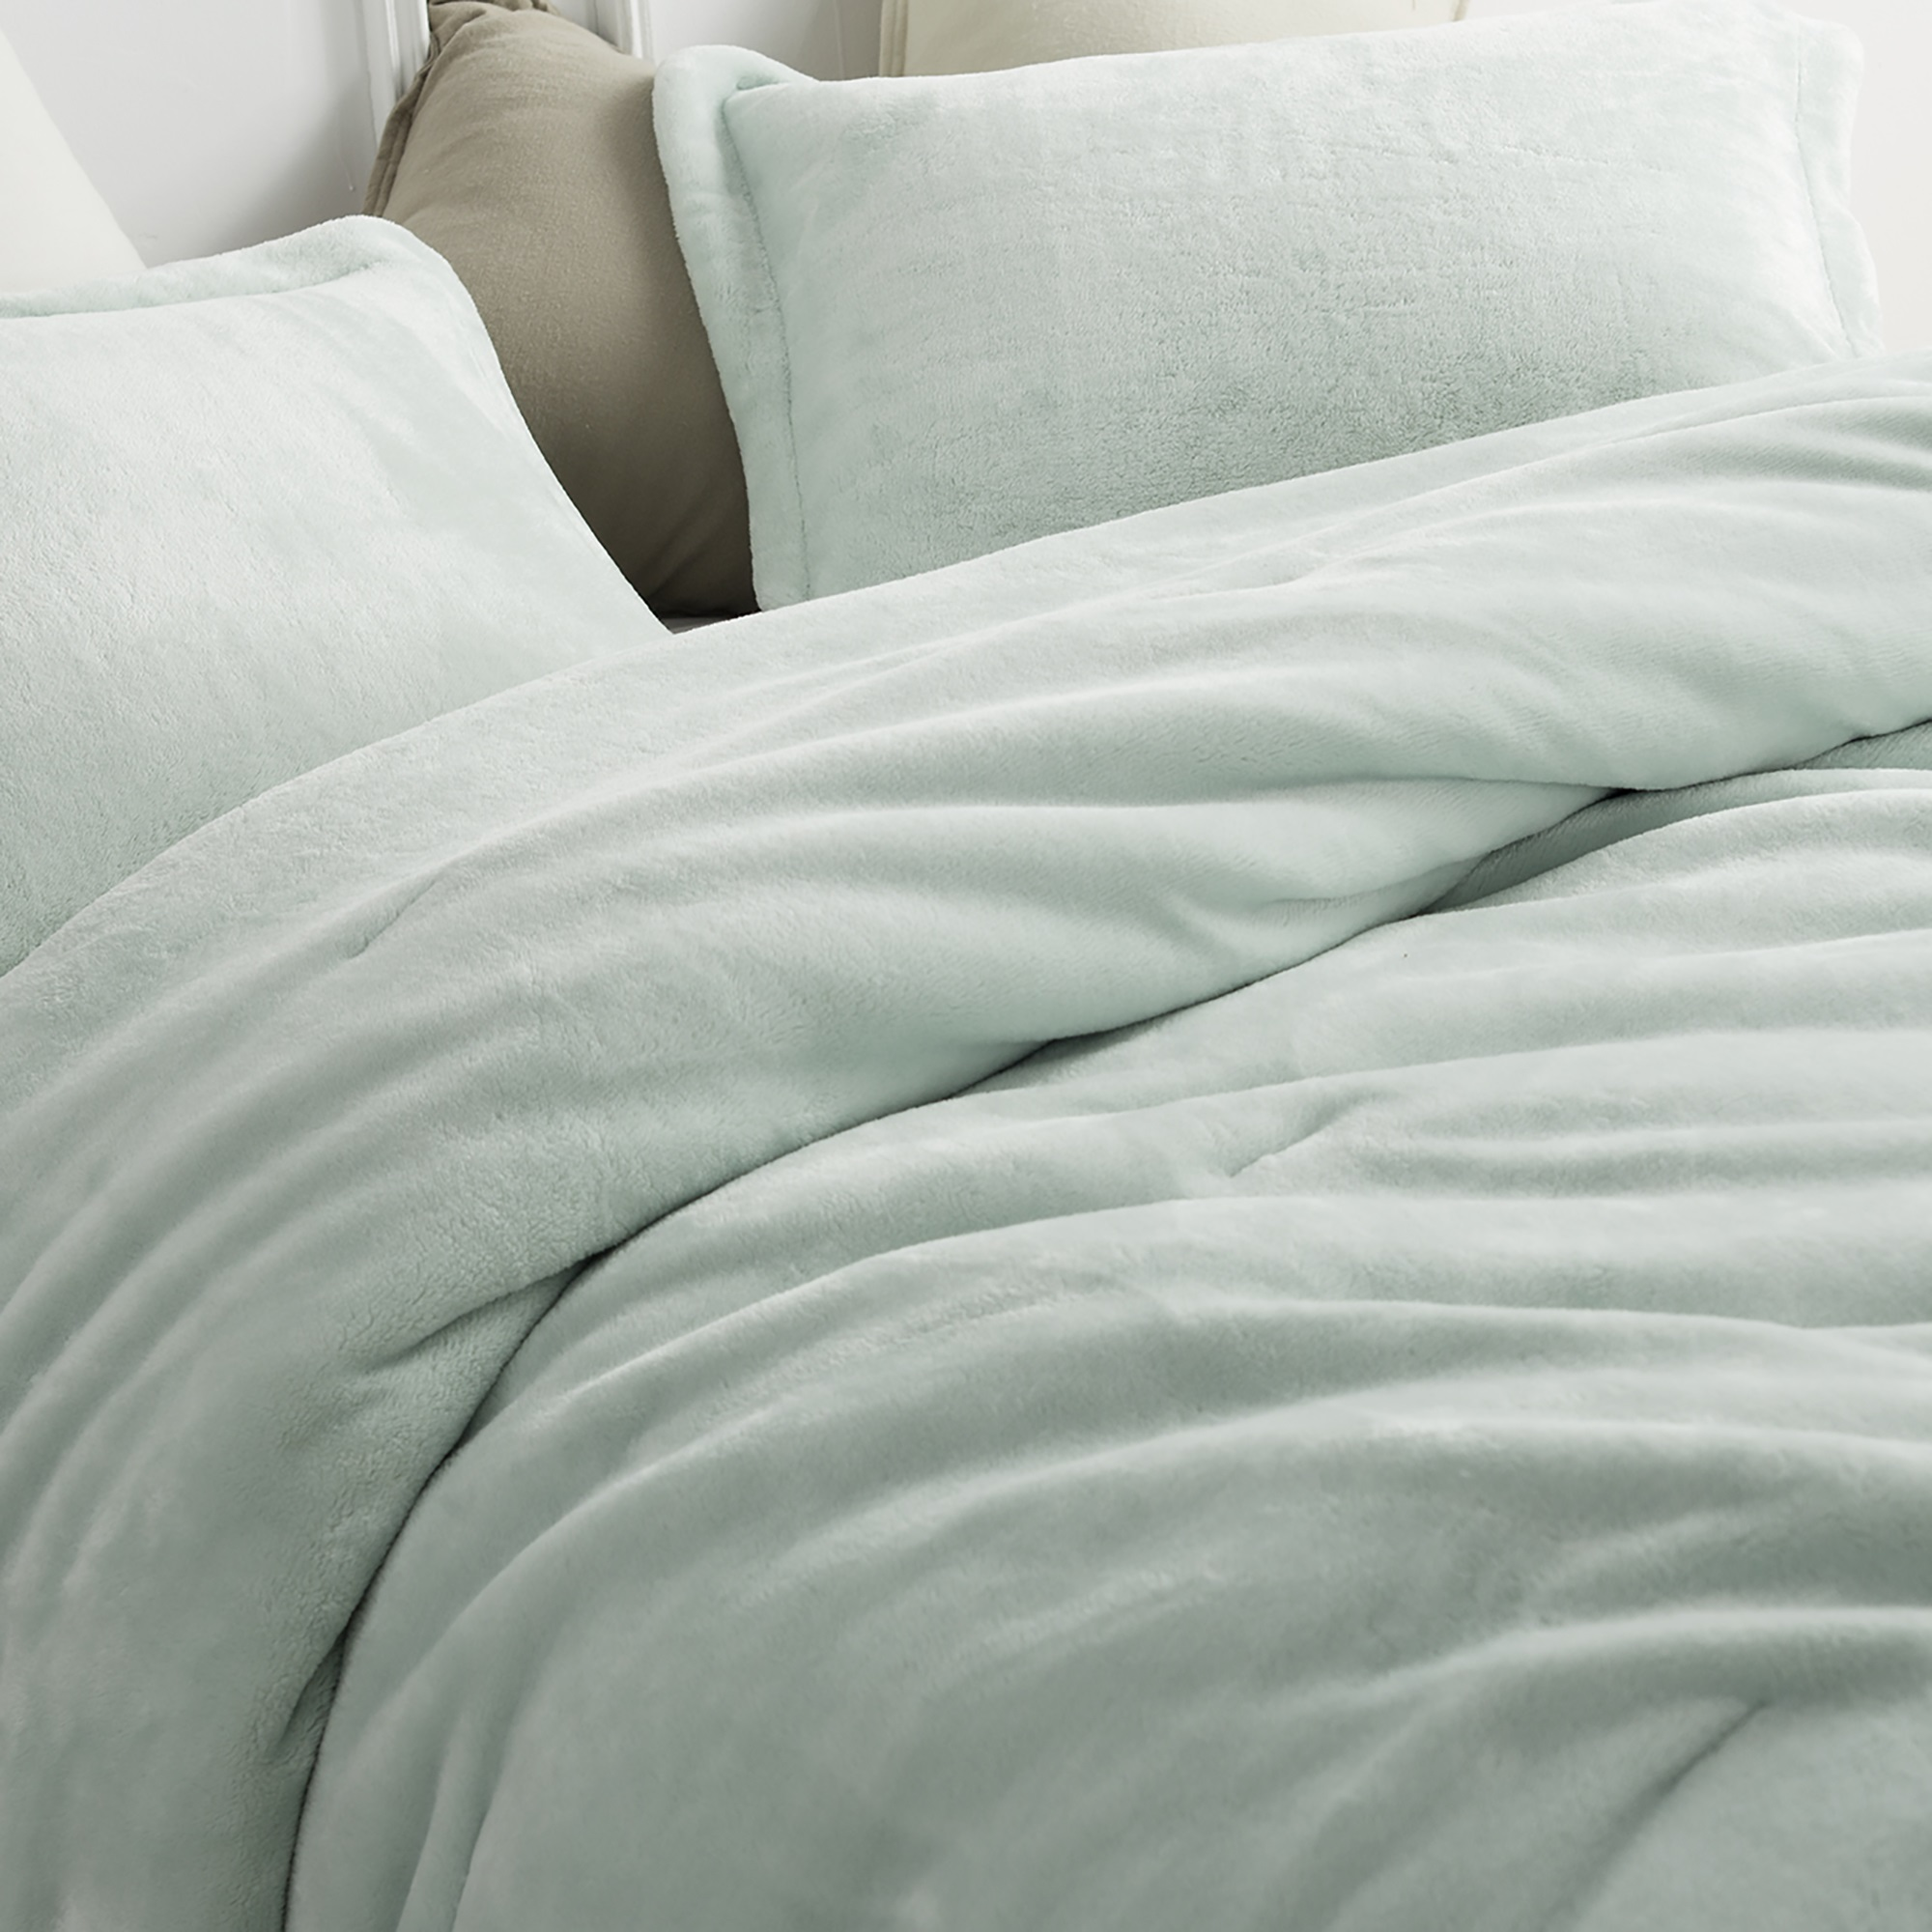 Coma Inducer® Oversized Comforter - Me Sooo Comfy - Hint of Mint